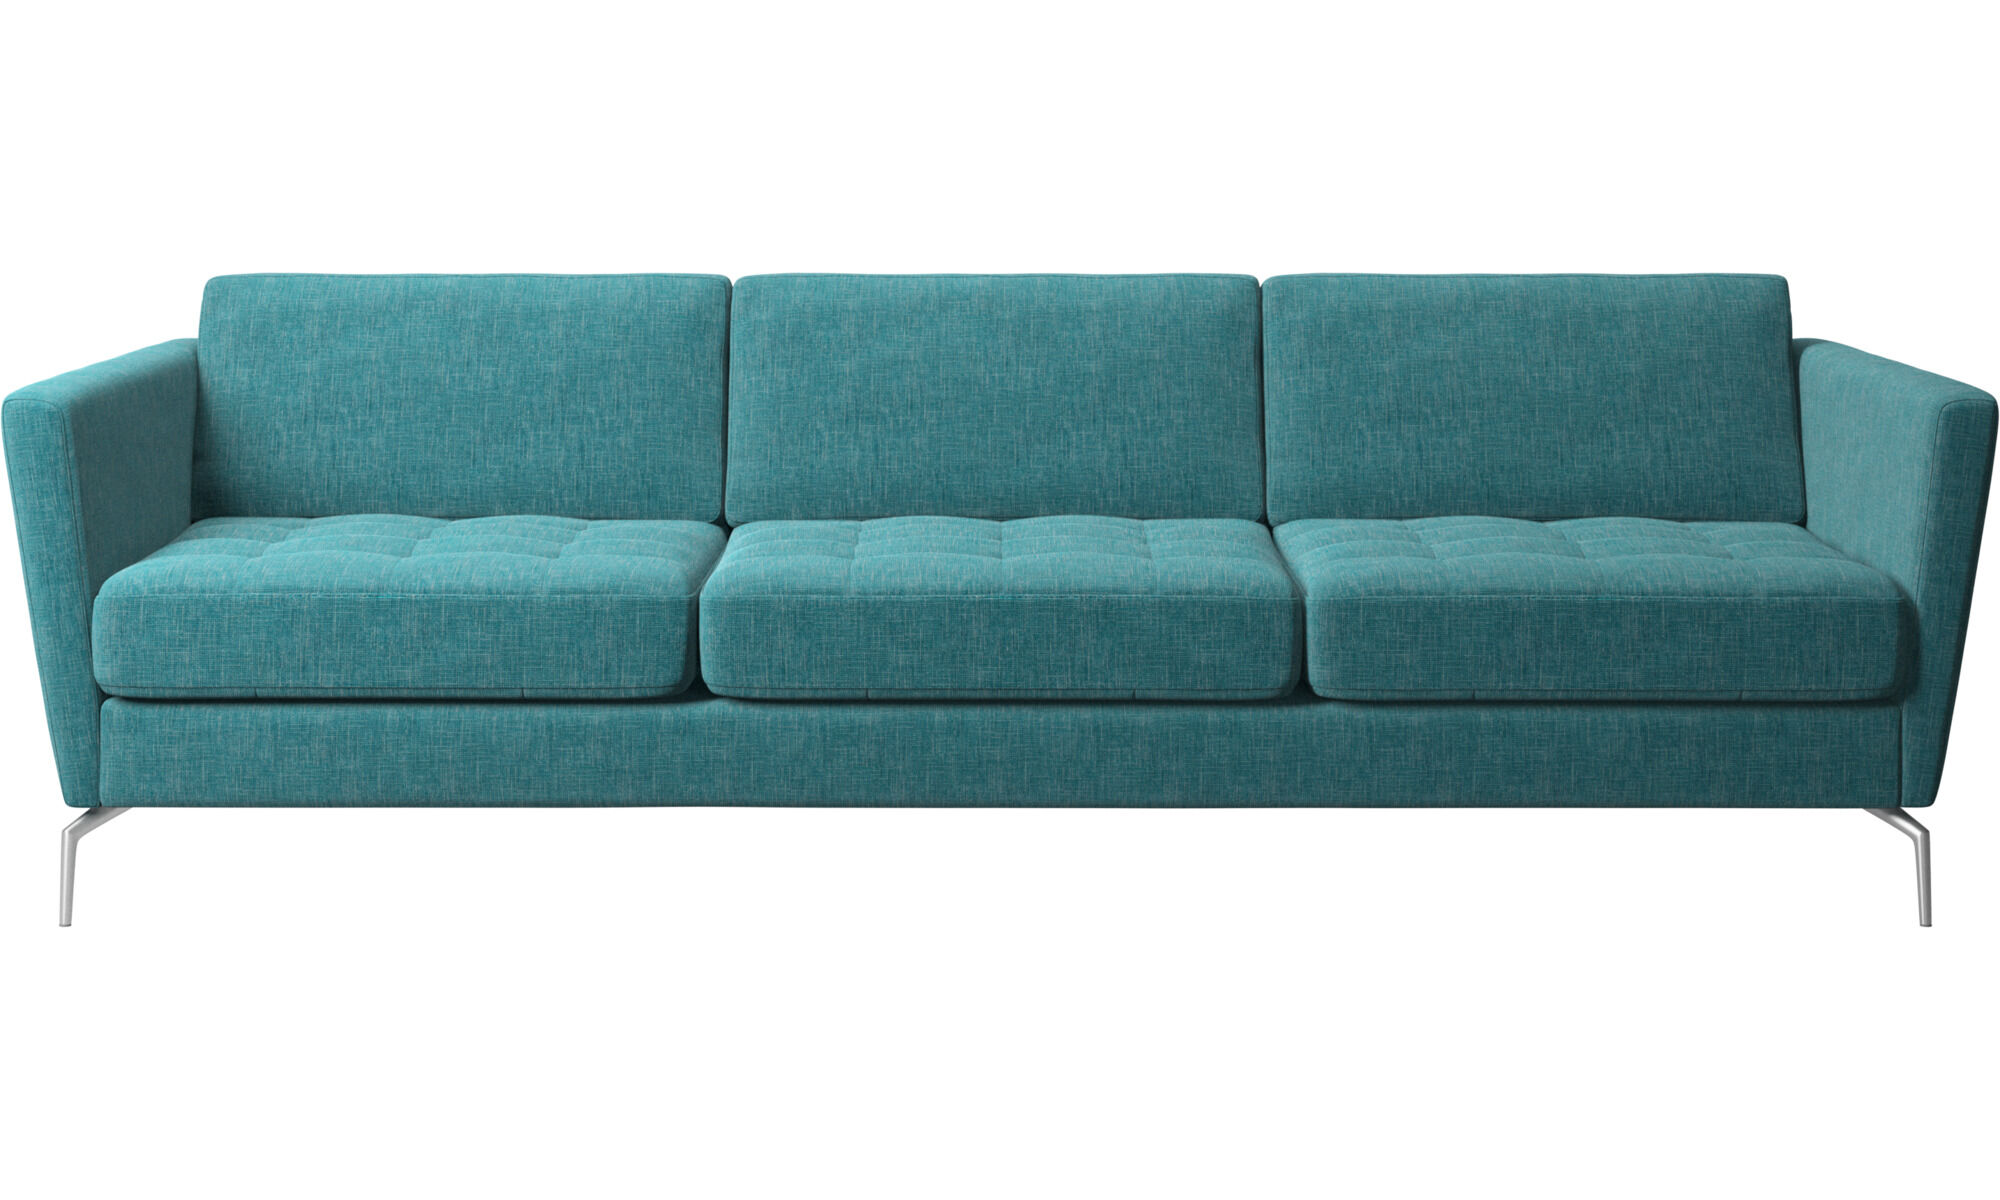 3 Seater Sofas   Osaka Sofa, Tufted Seat   Blue   Fabric ...